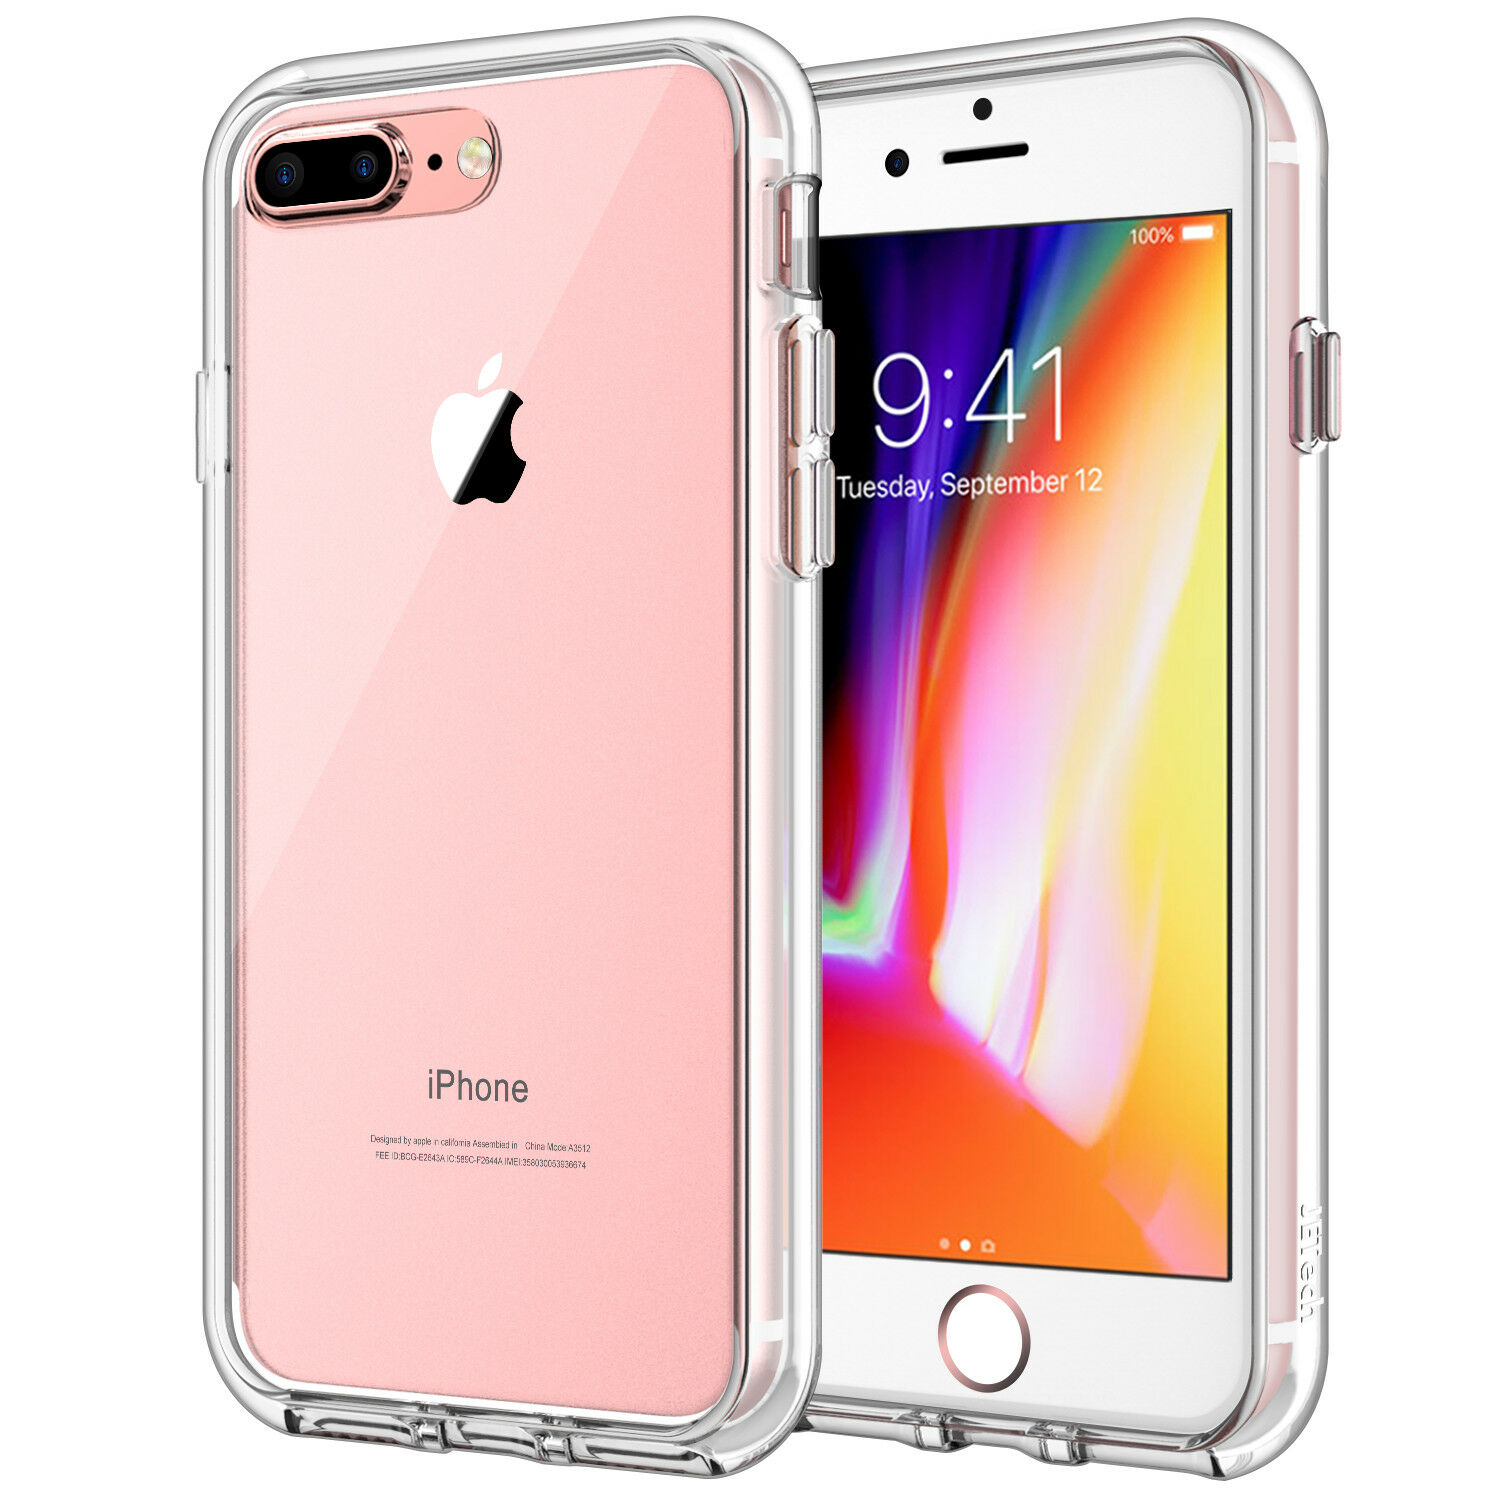 JETech Case for iPhone 8 Plus iPhone 7 Plus 5.5-Inch Shockpr